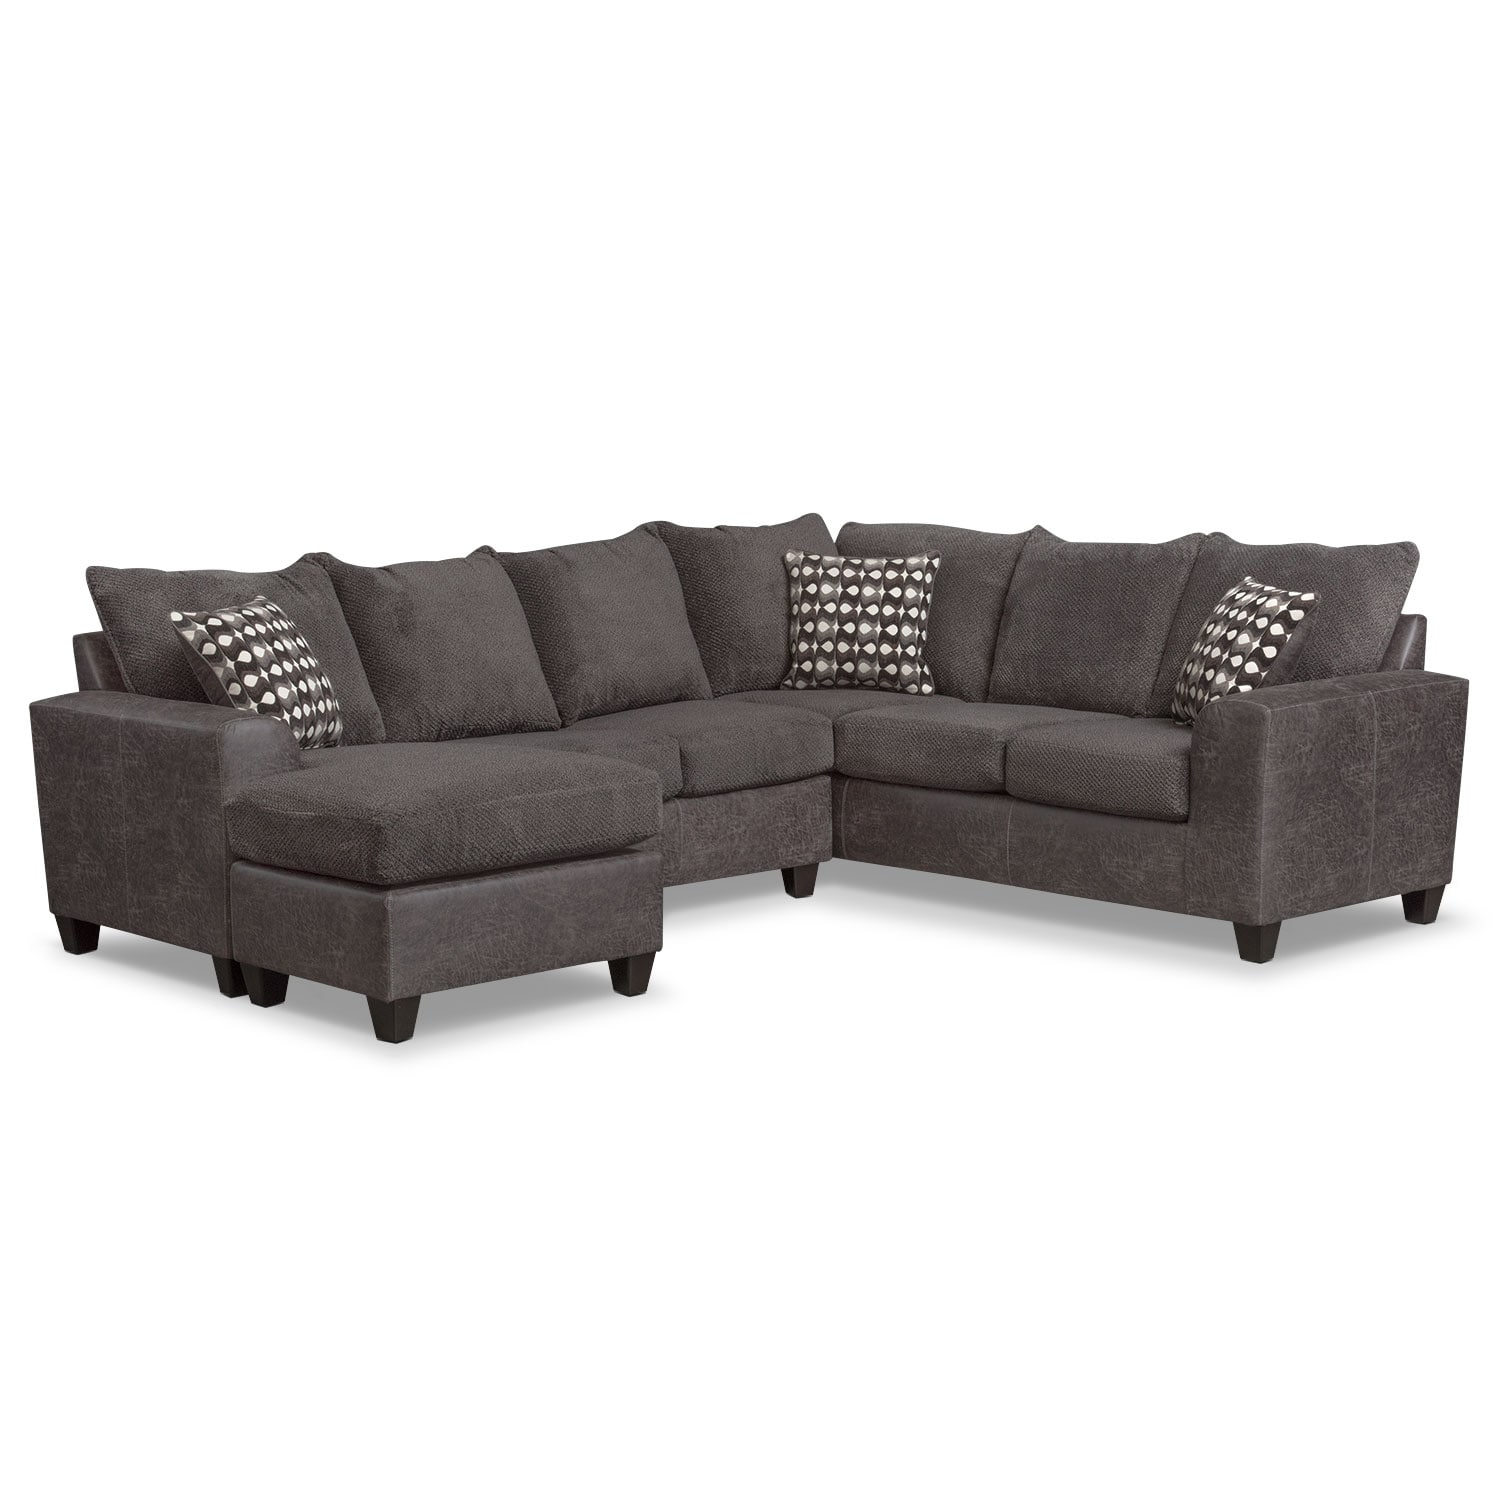 Shop Living Room Furniture | Value City Furniture | Value City ...